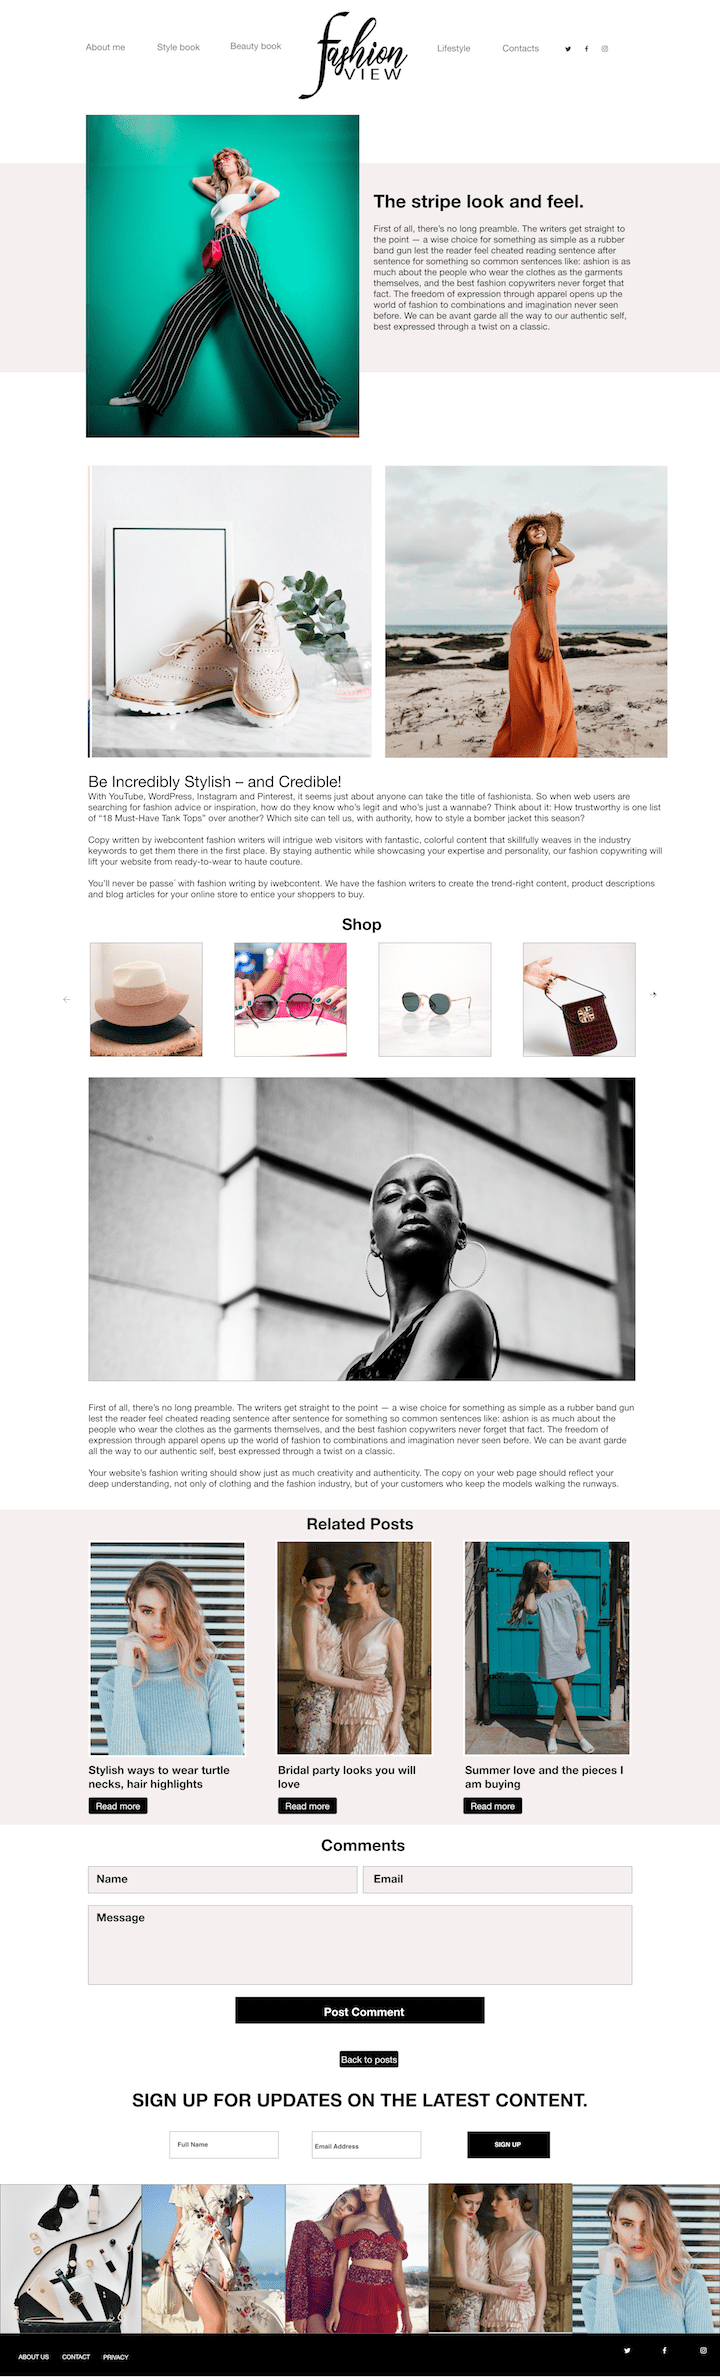 Homepage for fashion blogger website